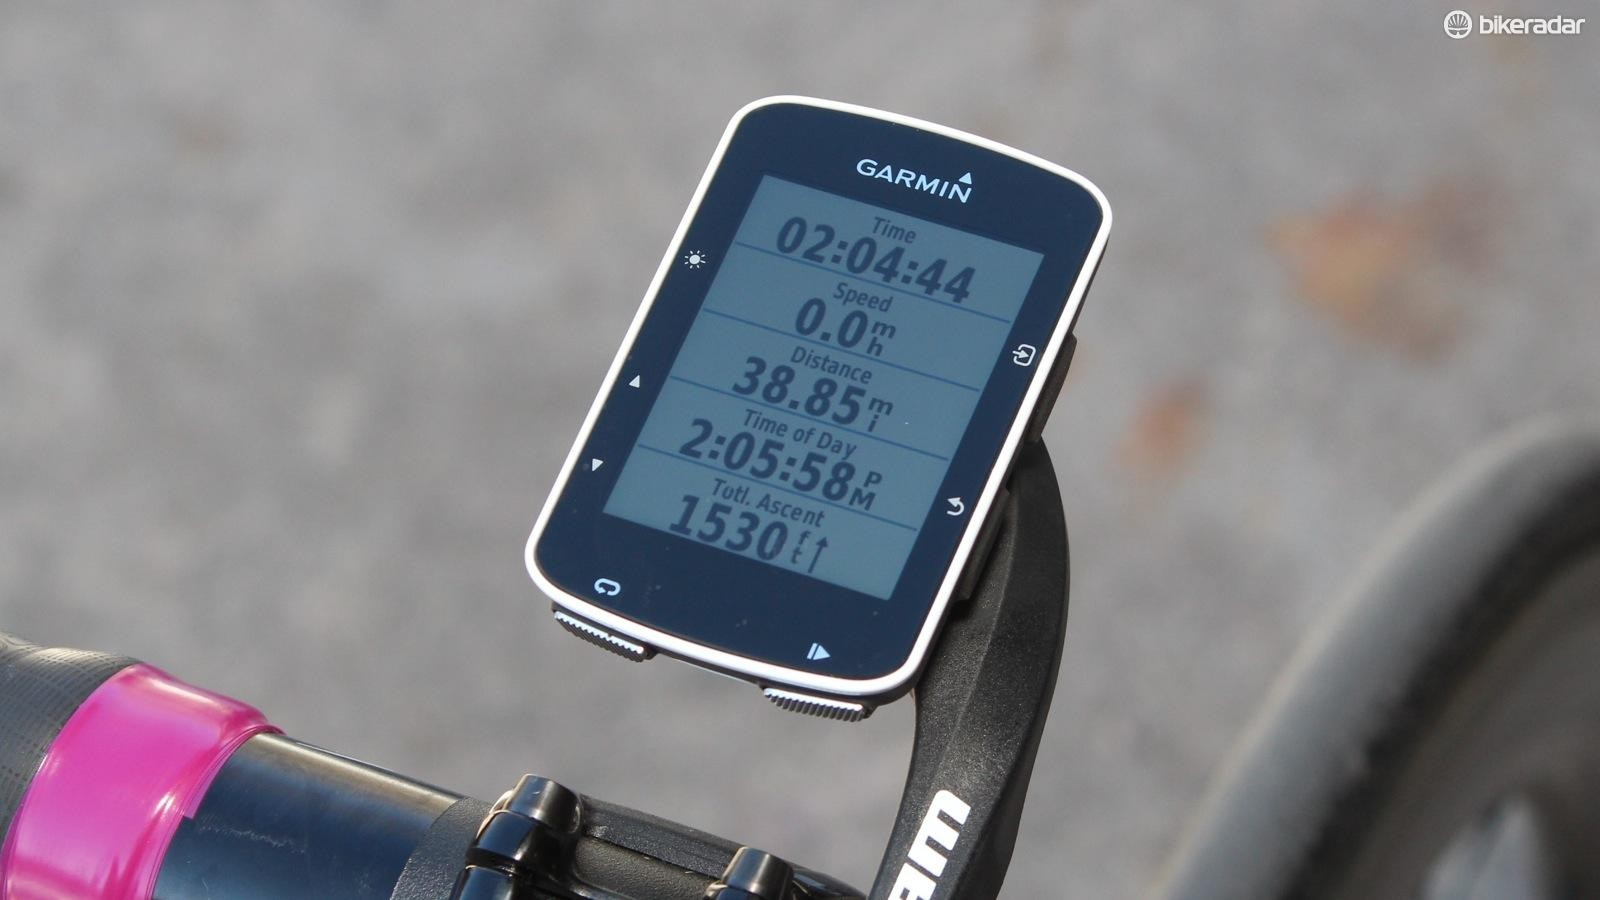 The 520 is a feature-rich GPS